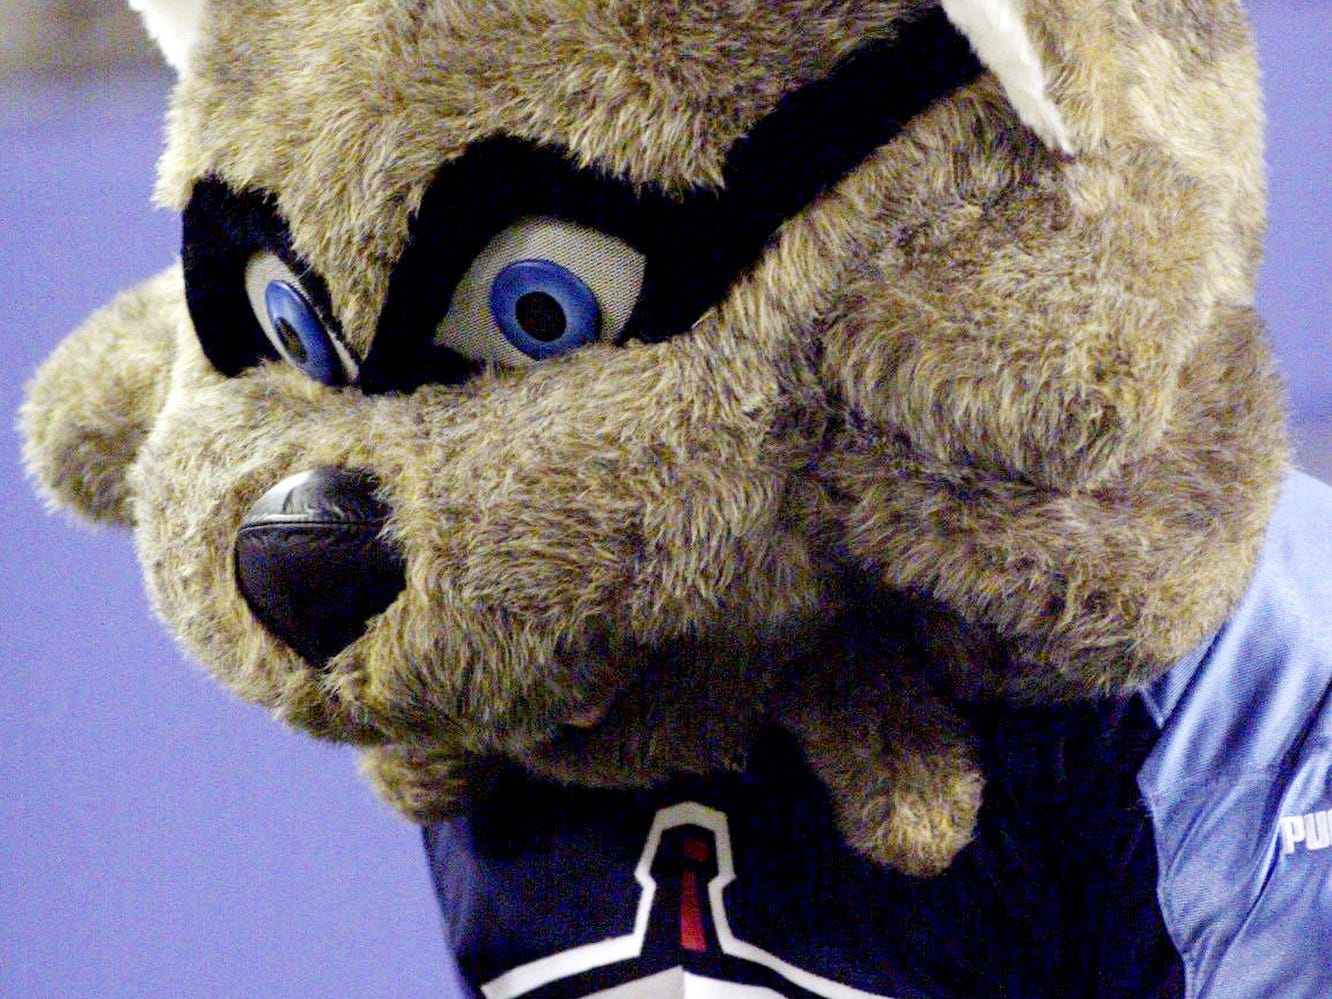 Tennessee Titan's new mascot, T-Rac, is ready for the very game at Adelphia Coliseum during a pre-season game against the Atlanta Falcons Aug. 27, 1999.